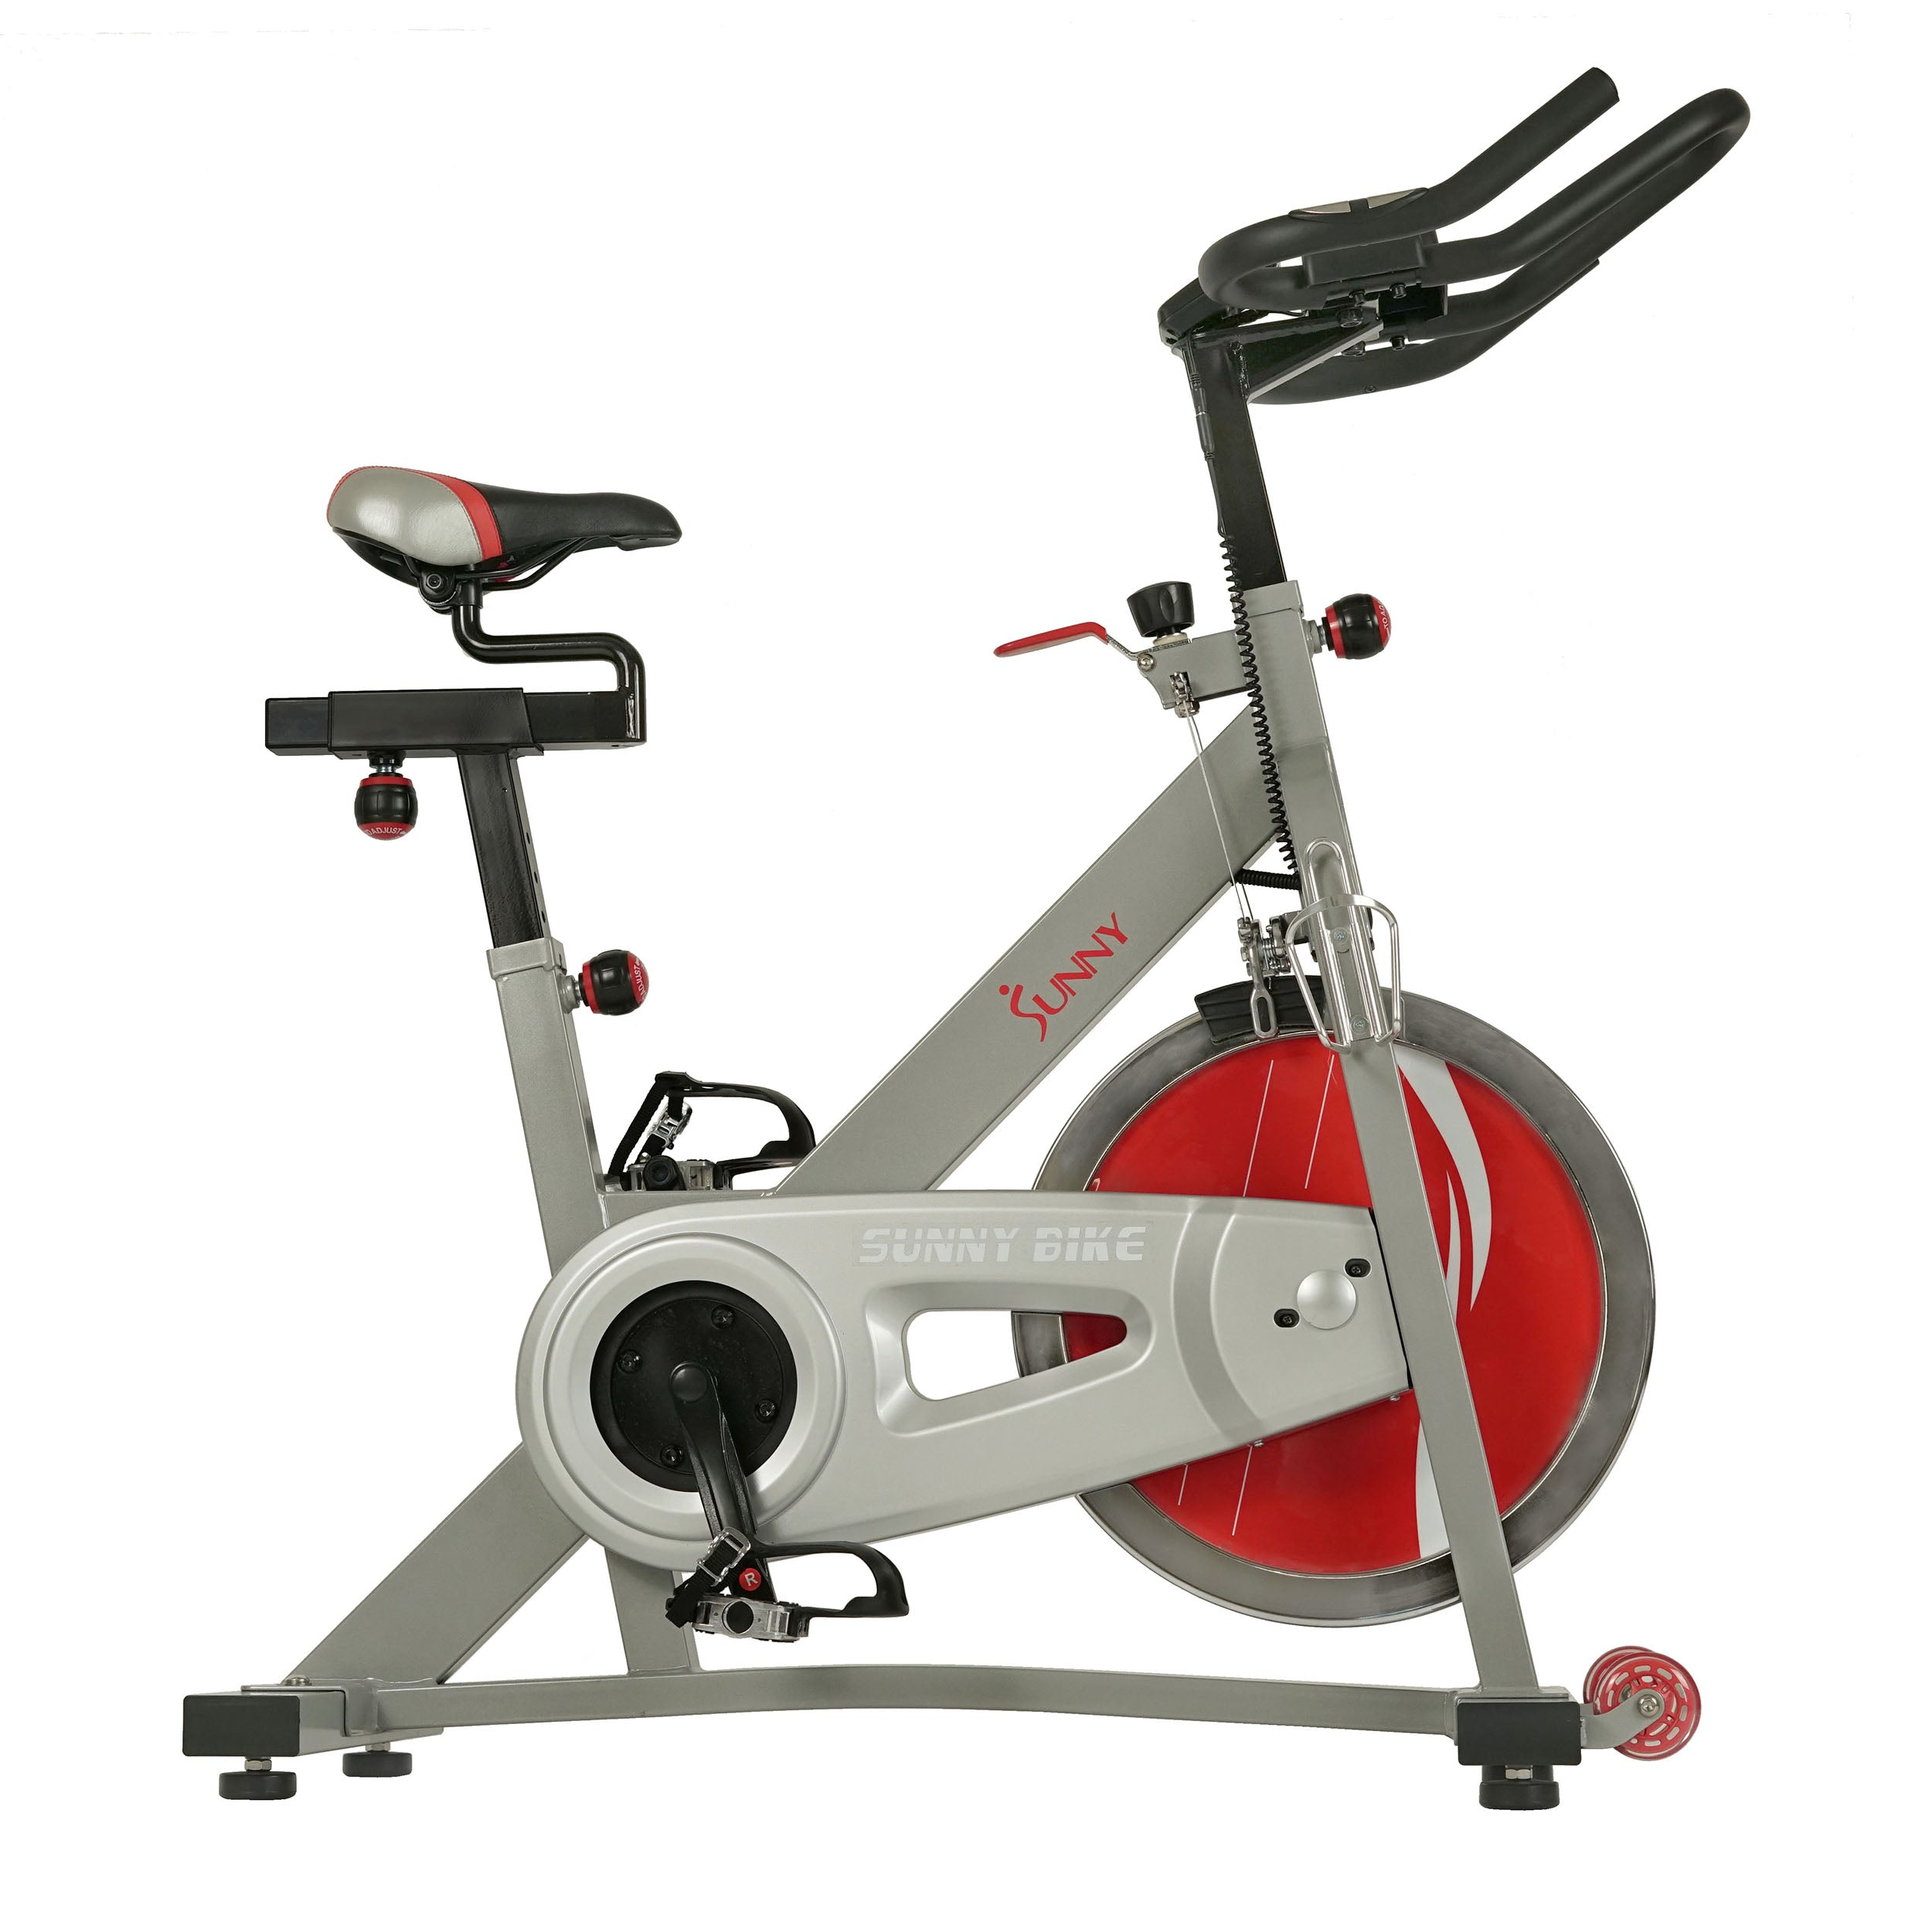 sunny-health-fitness-bikes-fitness-pro-II-indoor-cycling-bike-device-mount-advance-display-SF-B1995-belt-drive